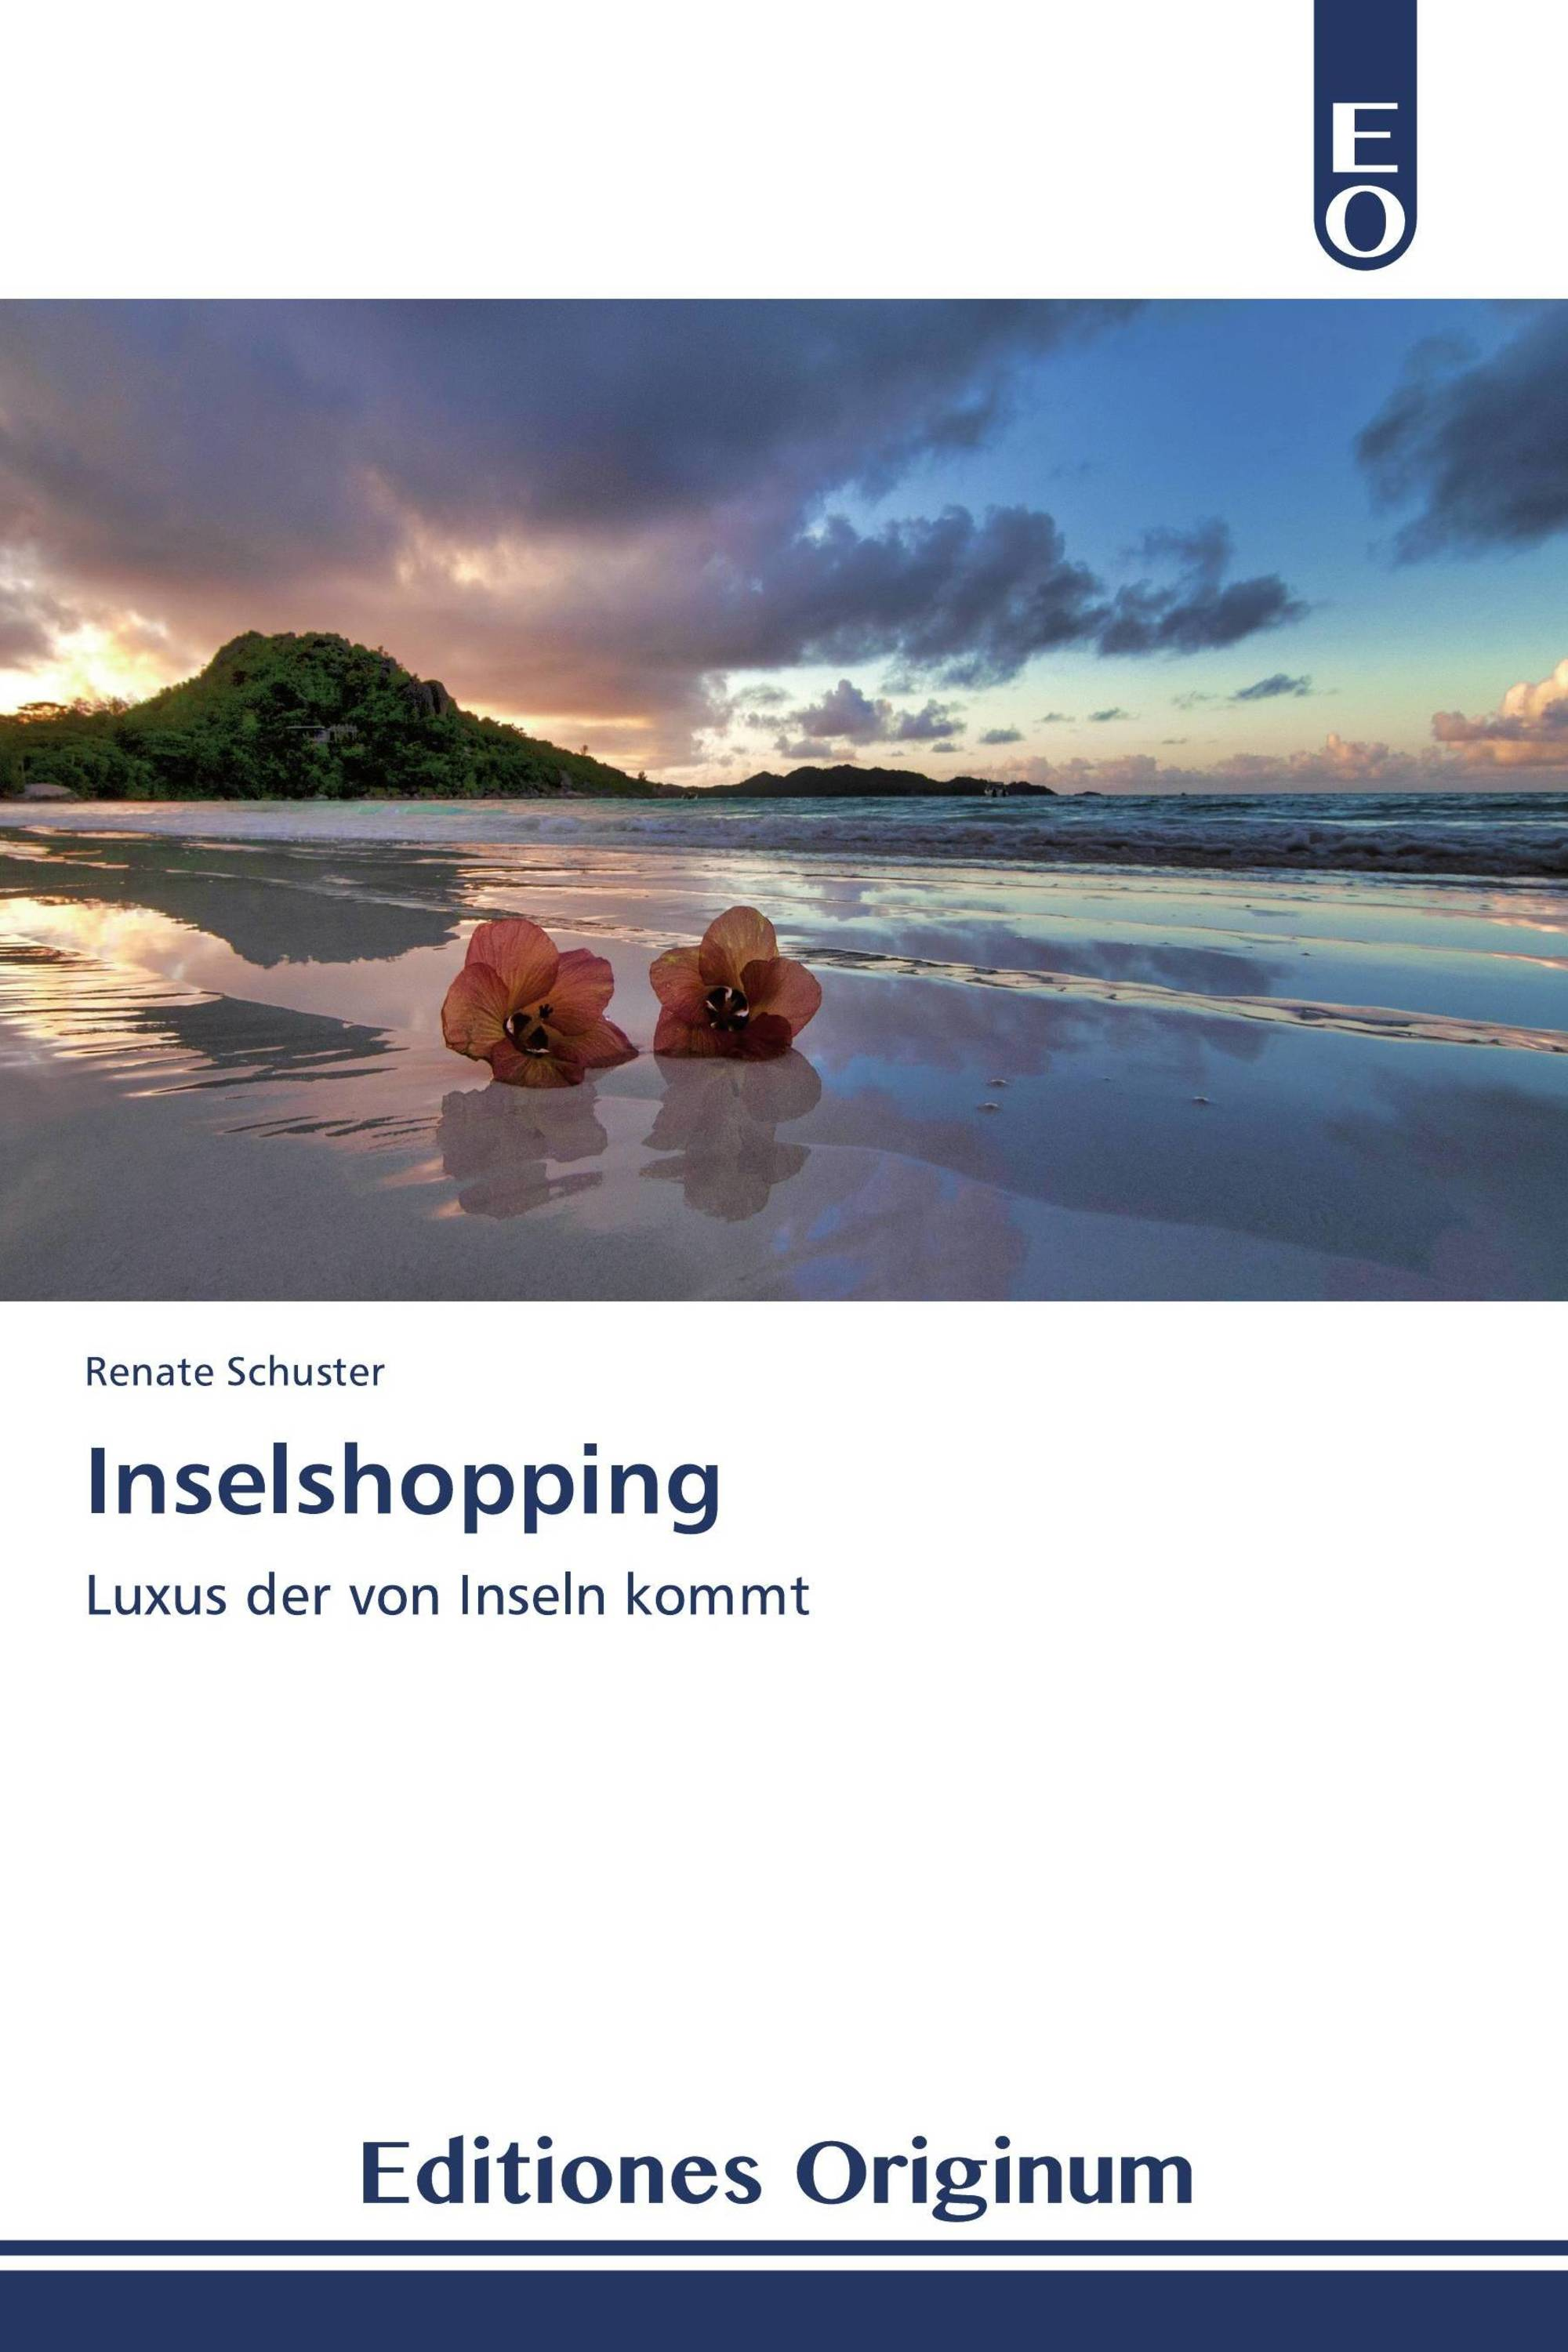 Inselshopping